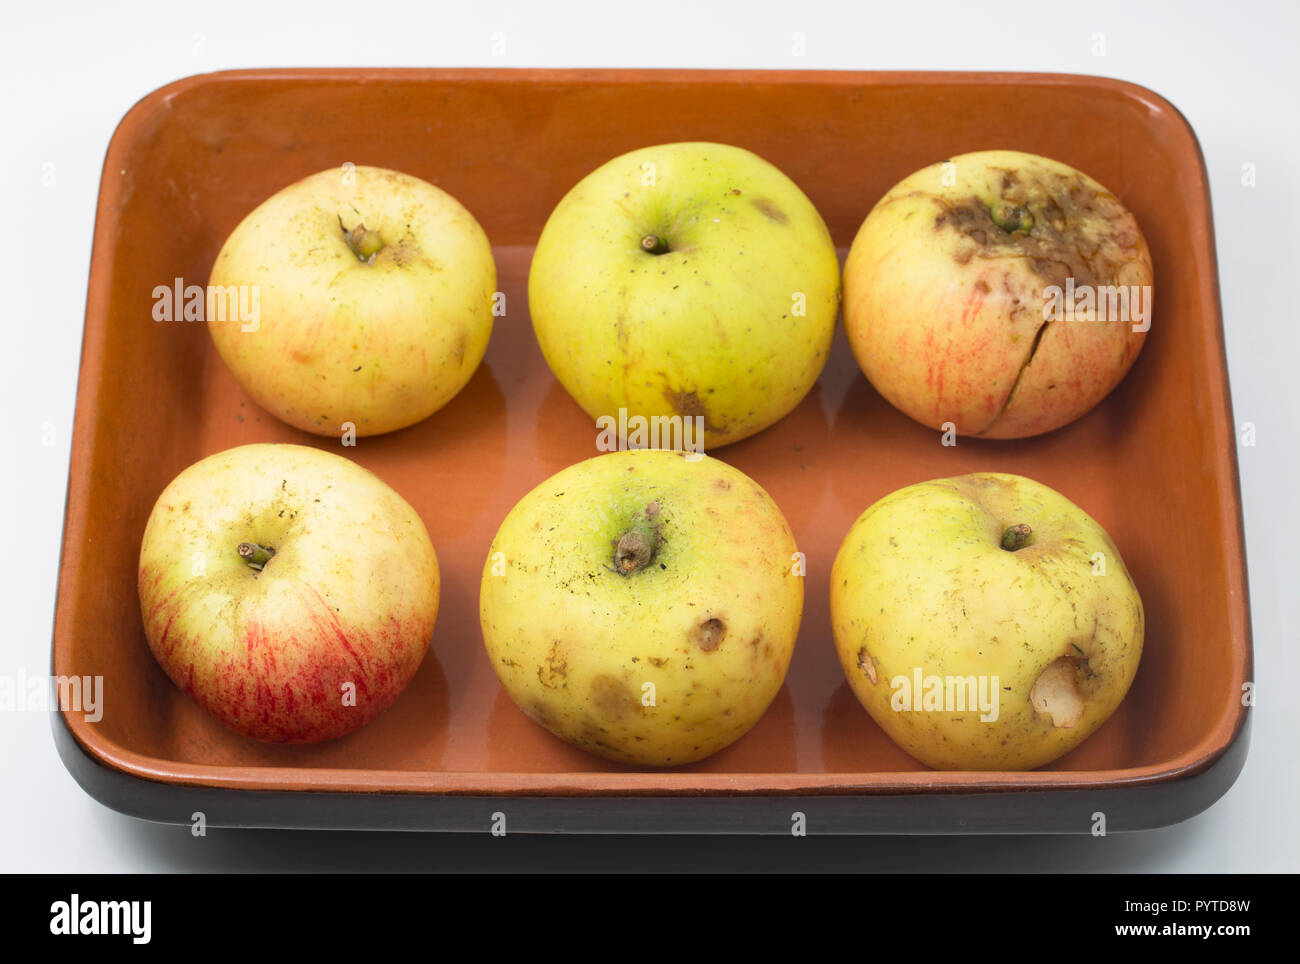 Windfall cooking apples that had been placed in a wheelbarrow outside a farm to be given away free to passers by. Ideal for making stewed apples. Phot - Stock Image